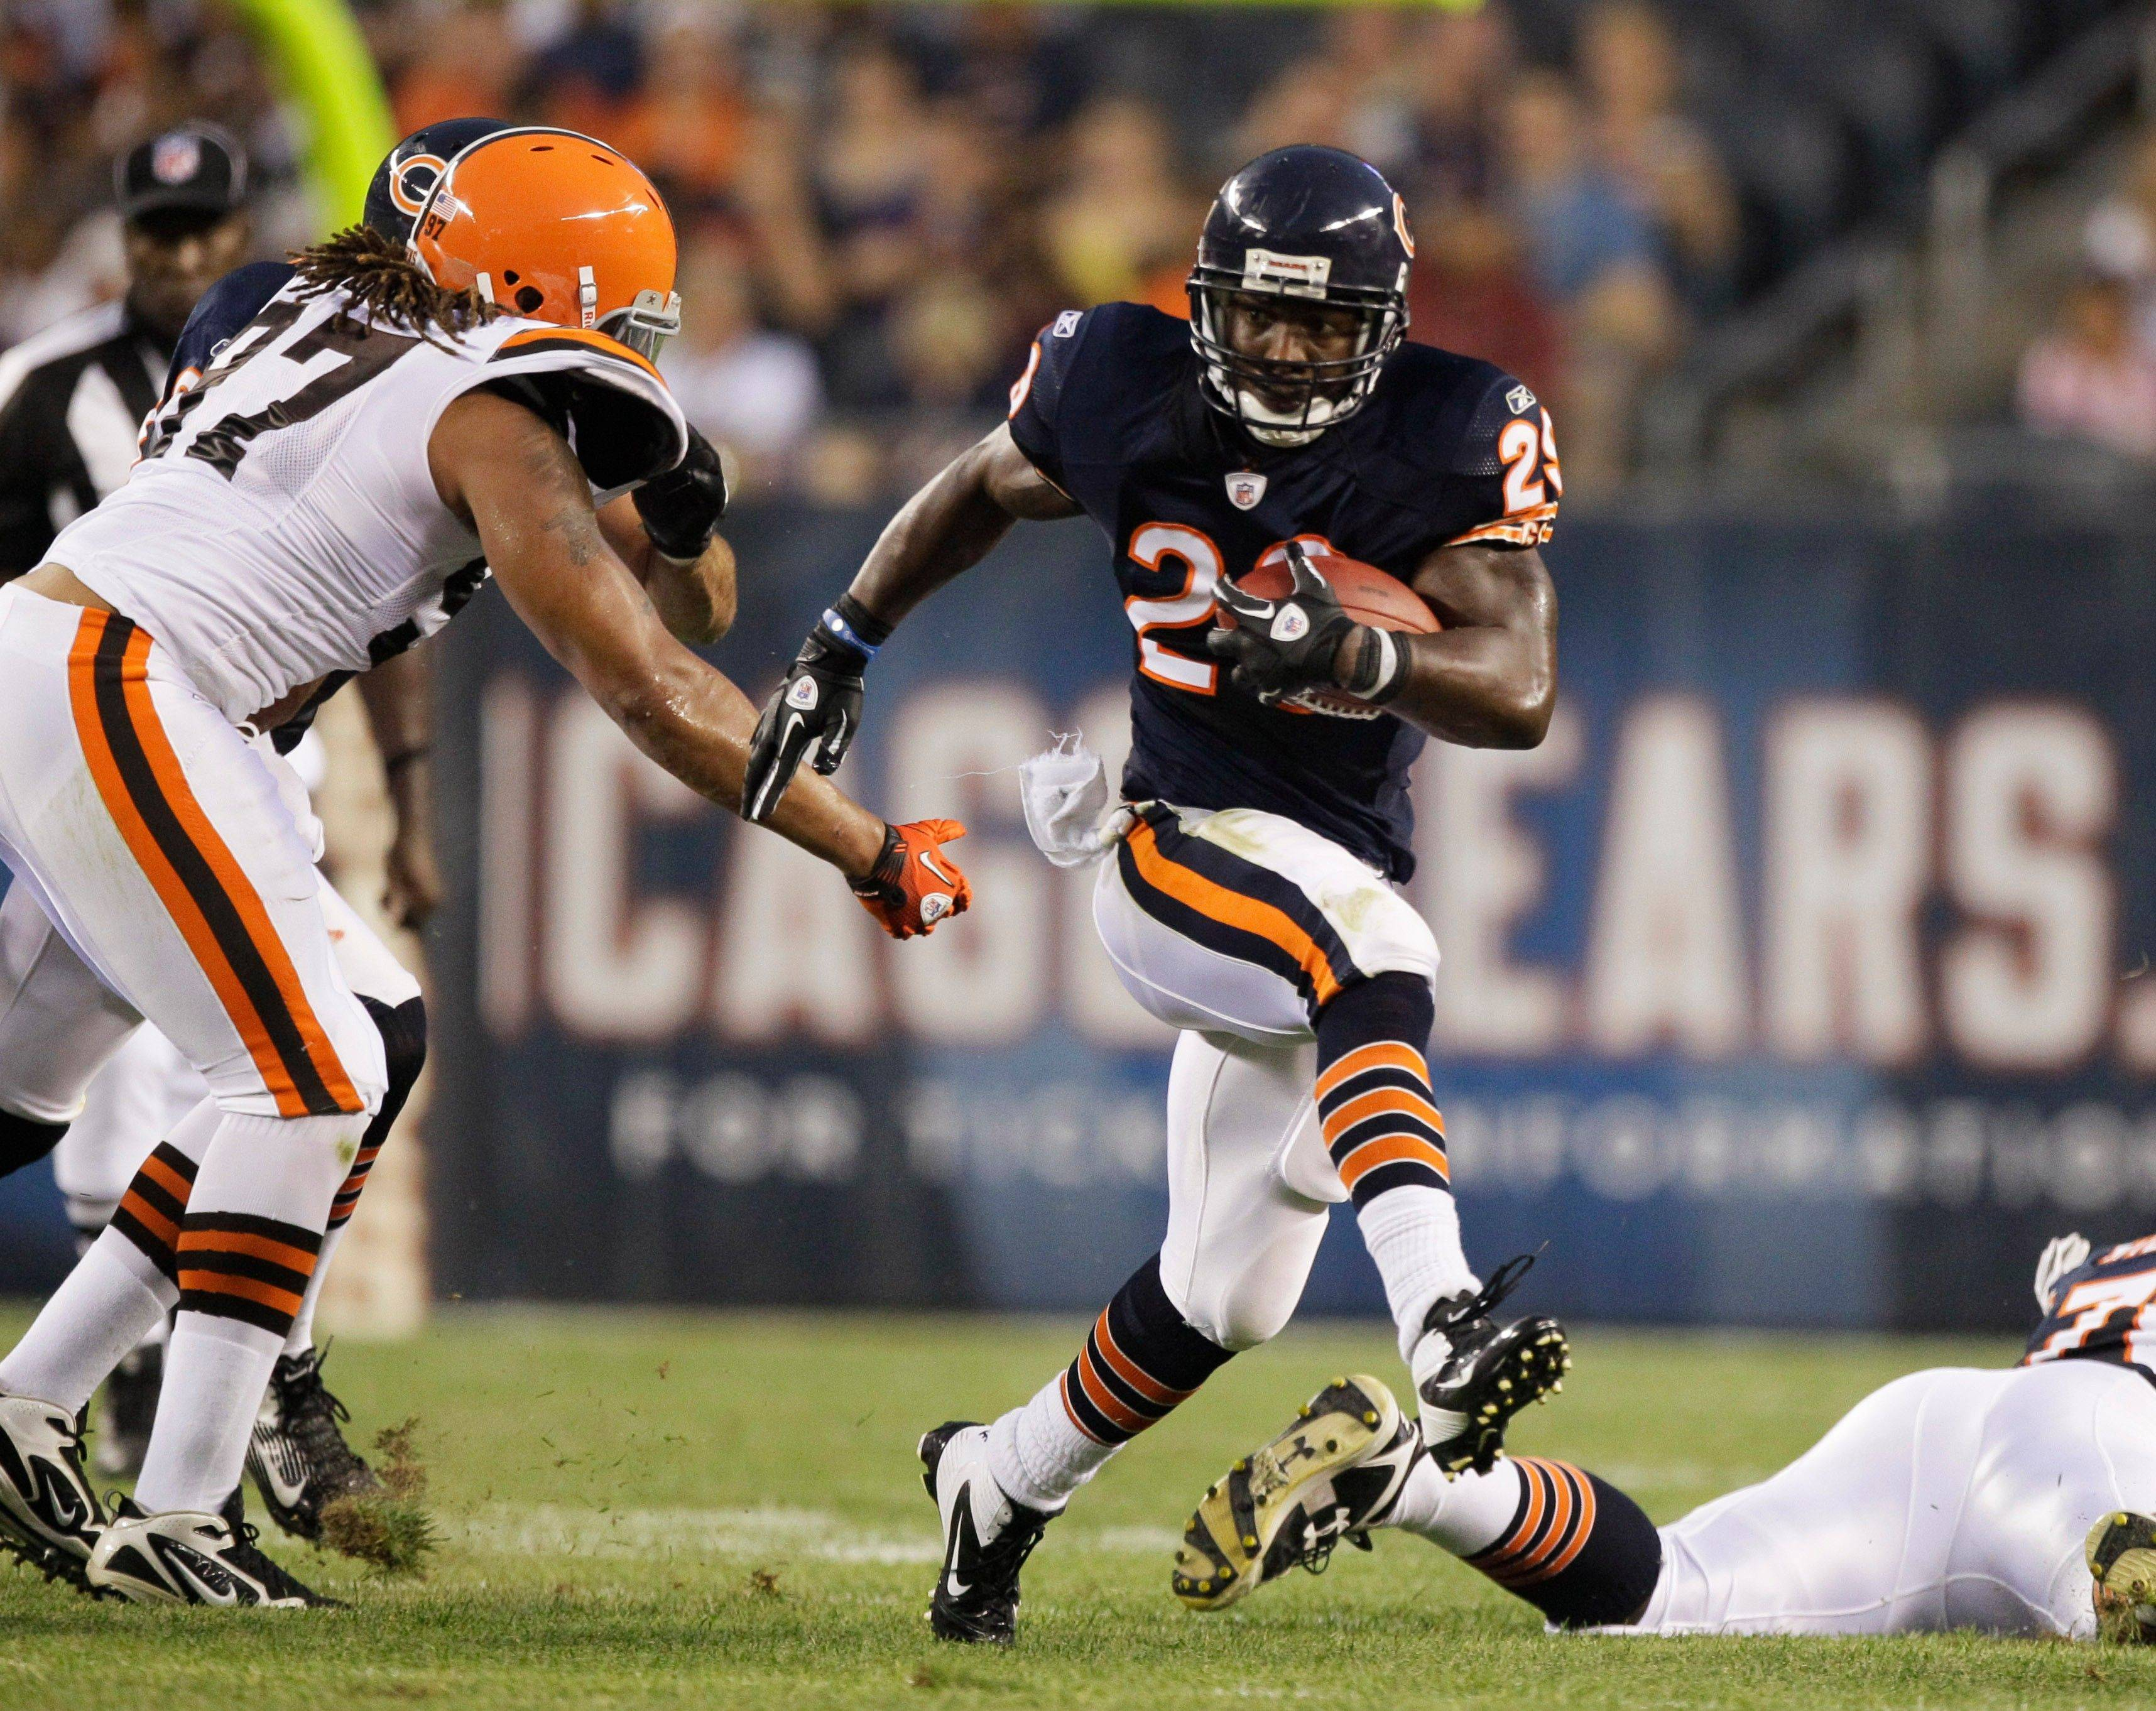 The Bears cut running back Chester Taylor, shown here running past Cleveland Browns defensive lineman Jabaal Sheard Thursday night.